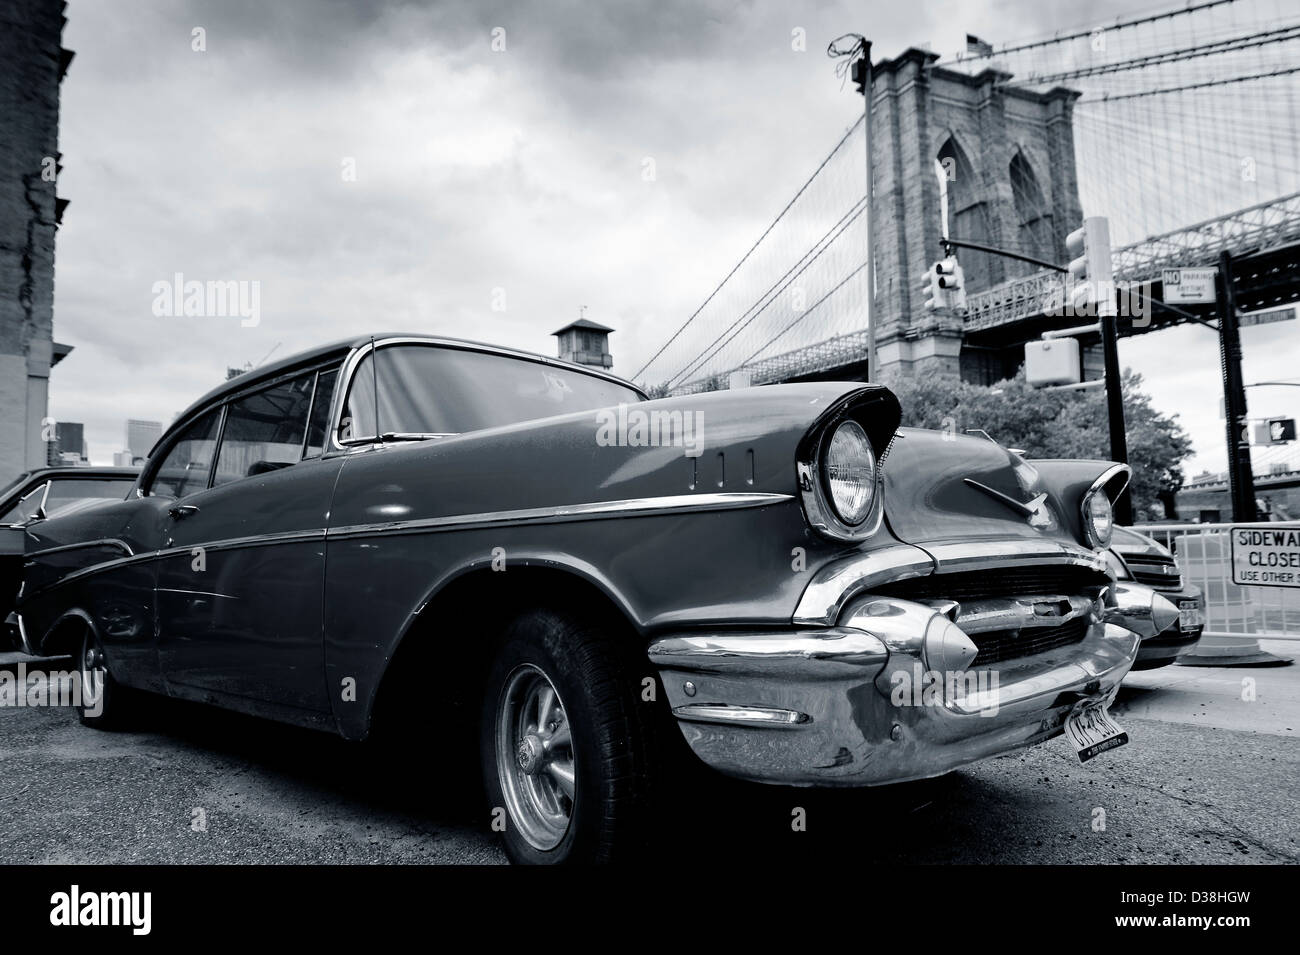 Vintage car parked by city bridge - Stock Image